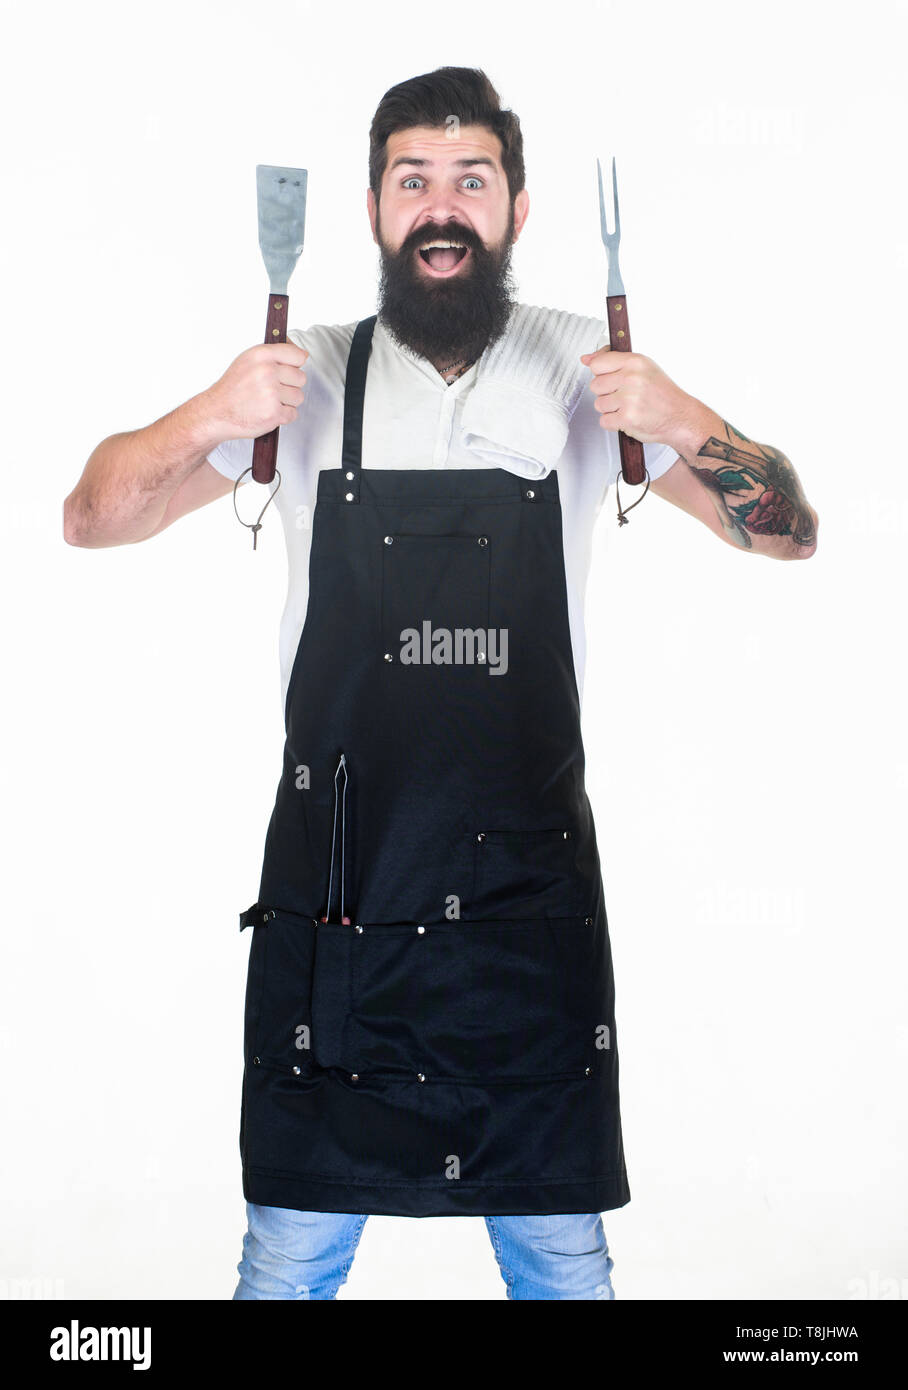 Kitchen utensils for keeping hands far away from heat. Grill cook with fork and spatula cooking utensils in hands. Bearded man holding barbecue utensils. Chef hipster with metal grill utensils. - Stock Image